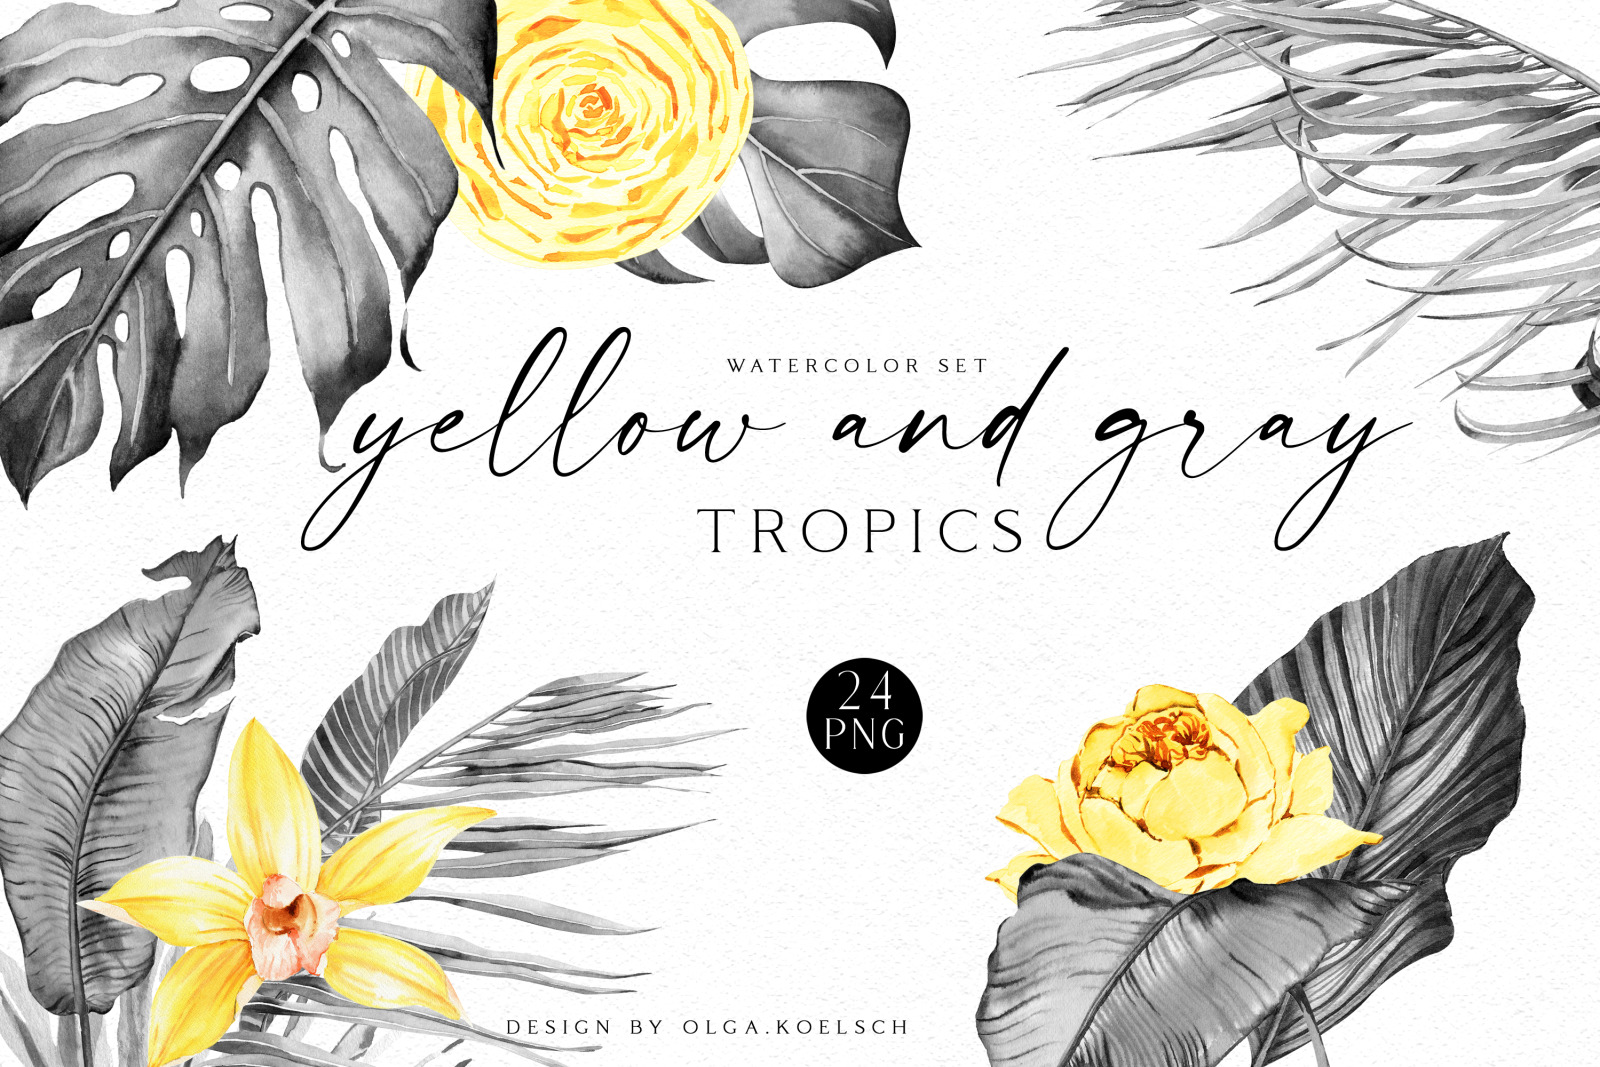 Watercolor gray and yellow tropical clipart, Yellow roses, gray palm leaves for wedding invitations